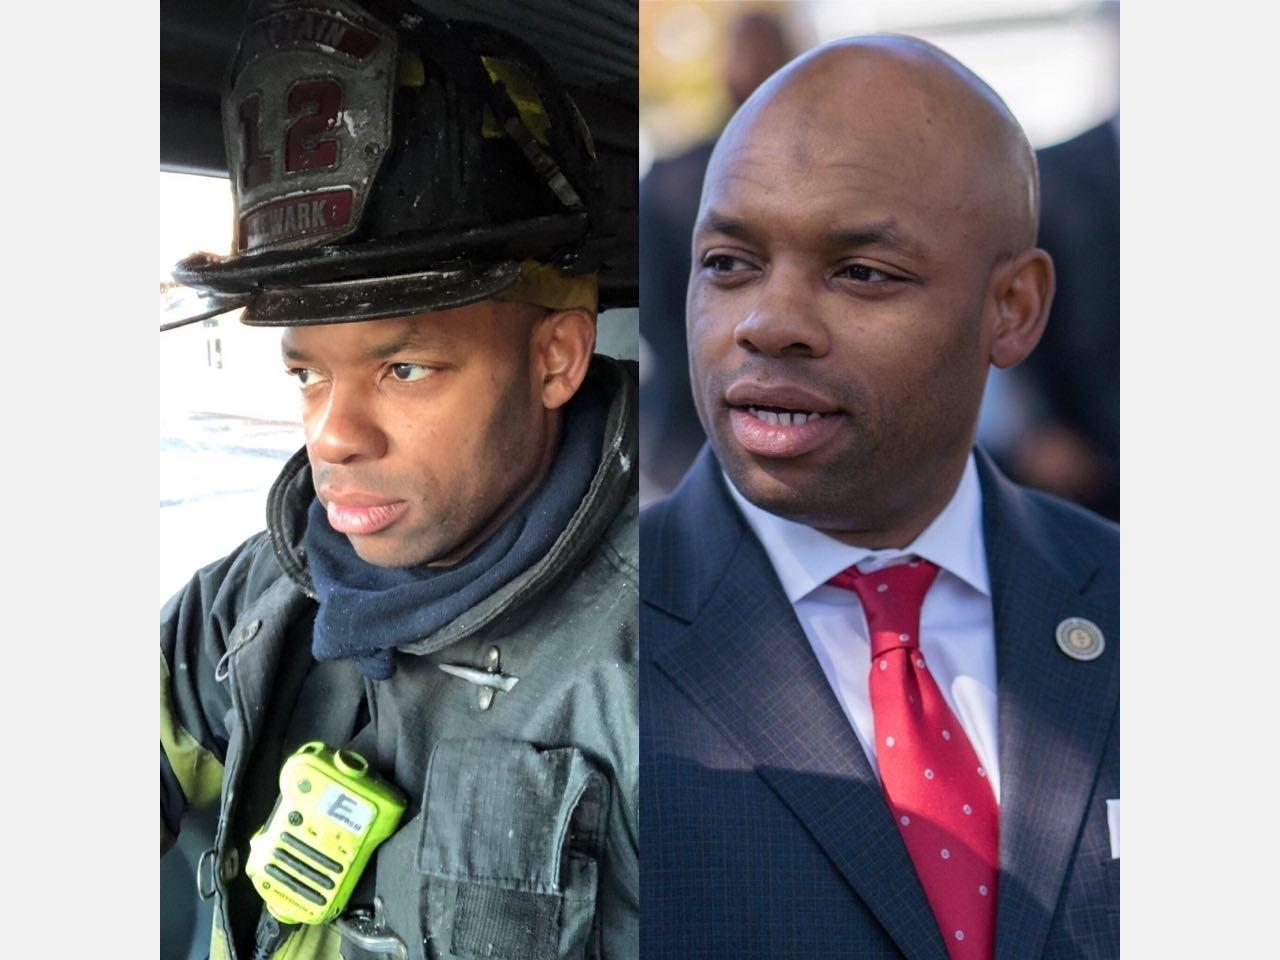 East Orange Councilman Mustafa Al-M. Brent, who also serves as a firefighter in Newark, says he's on the mend after being hospitalized for COVID-19.